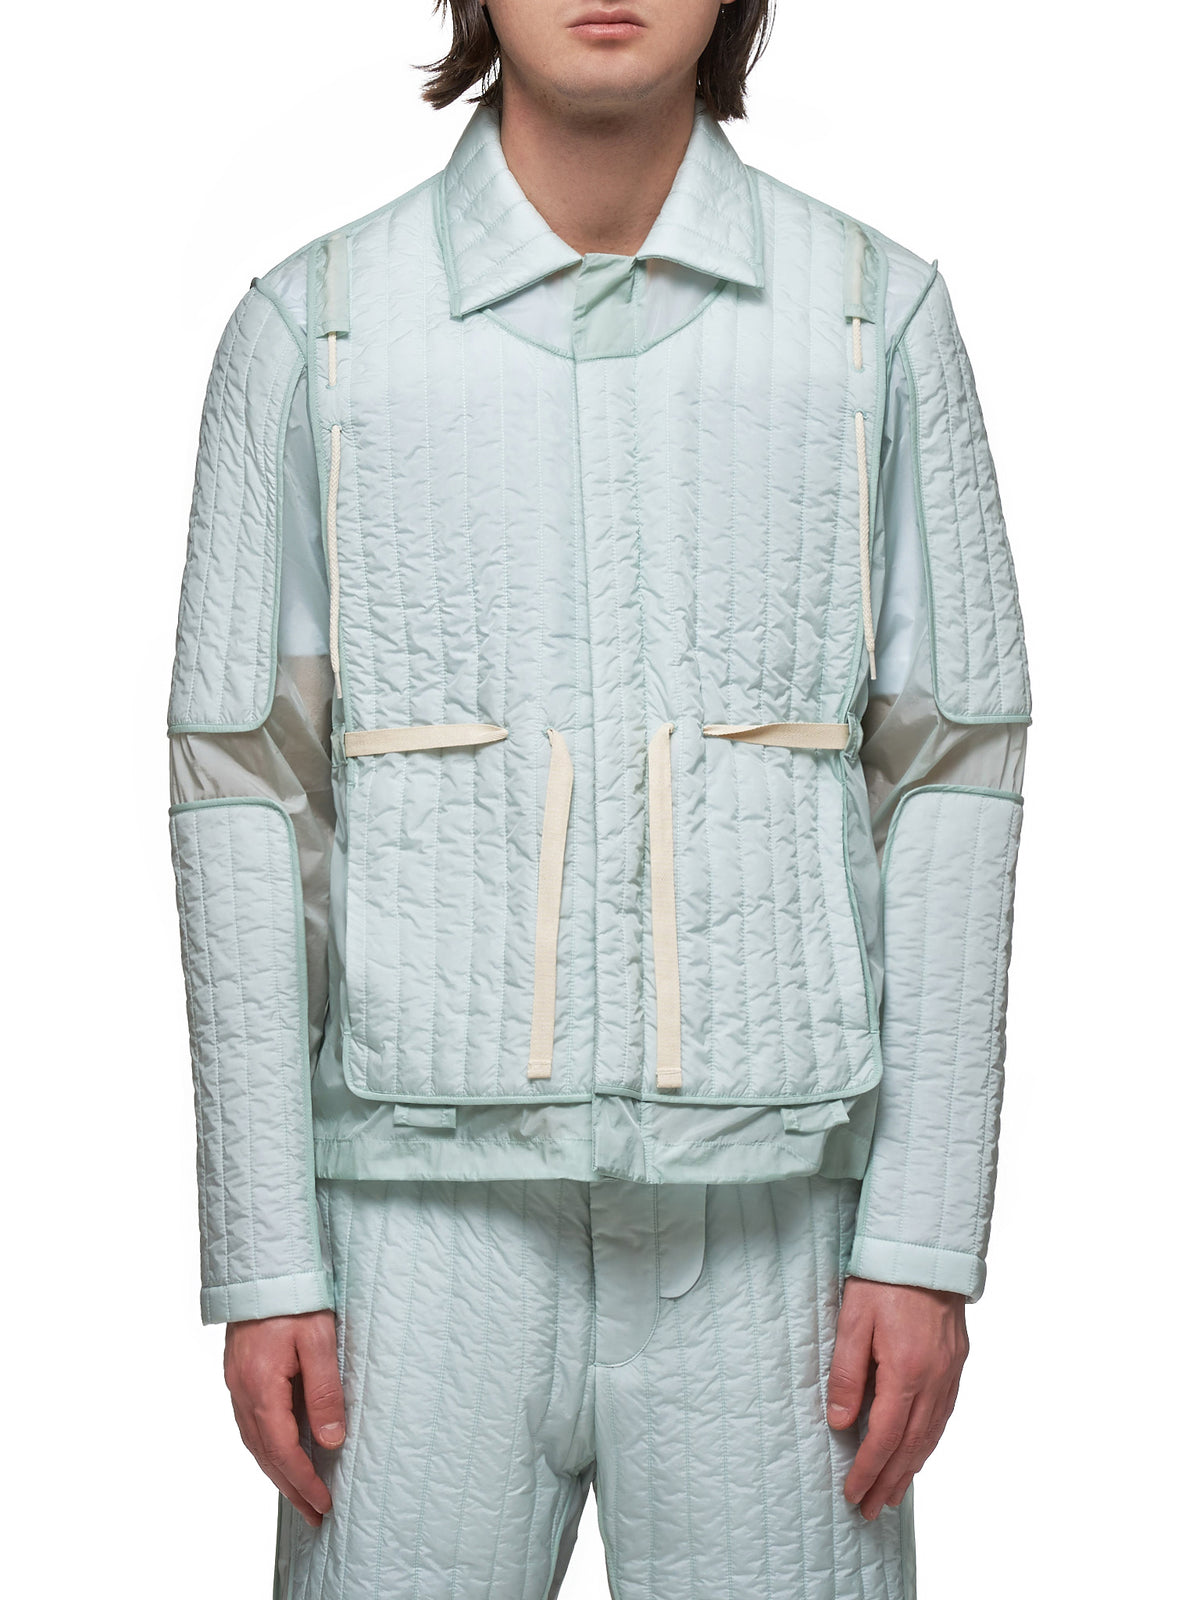 Craig Green Quilted Jacket - Hlorenzo Front